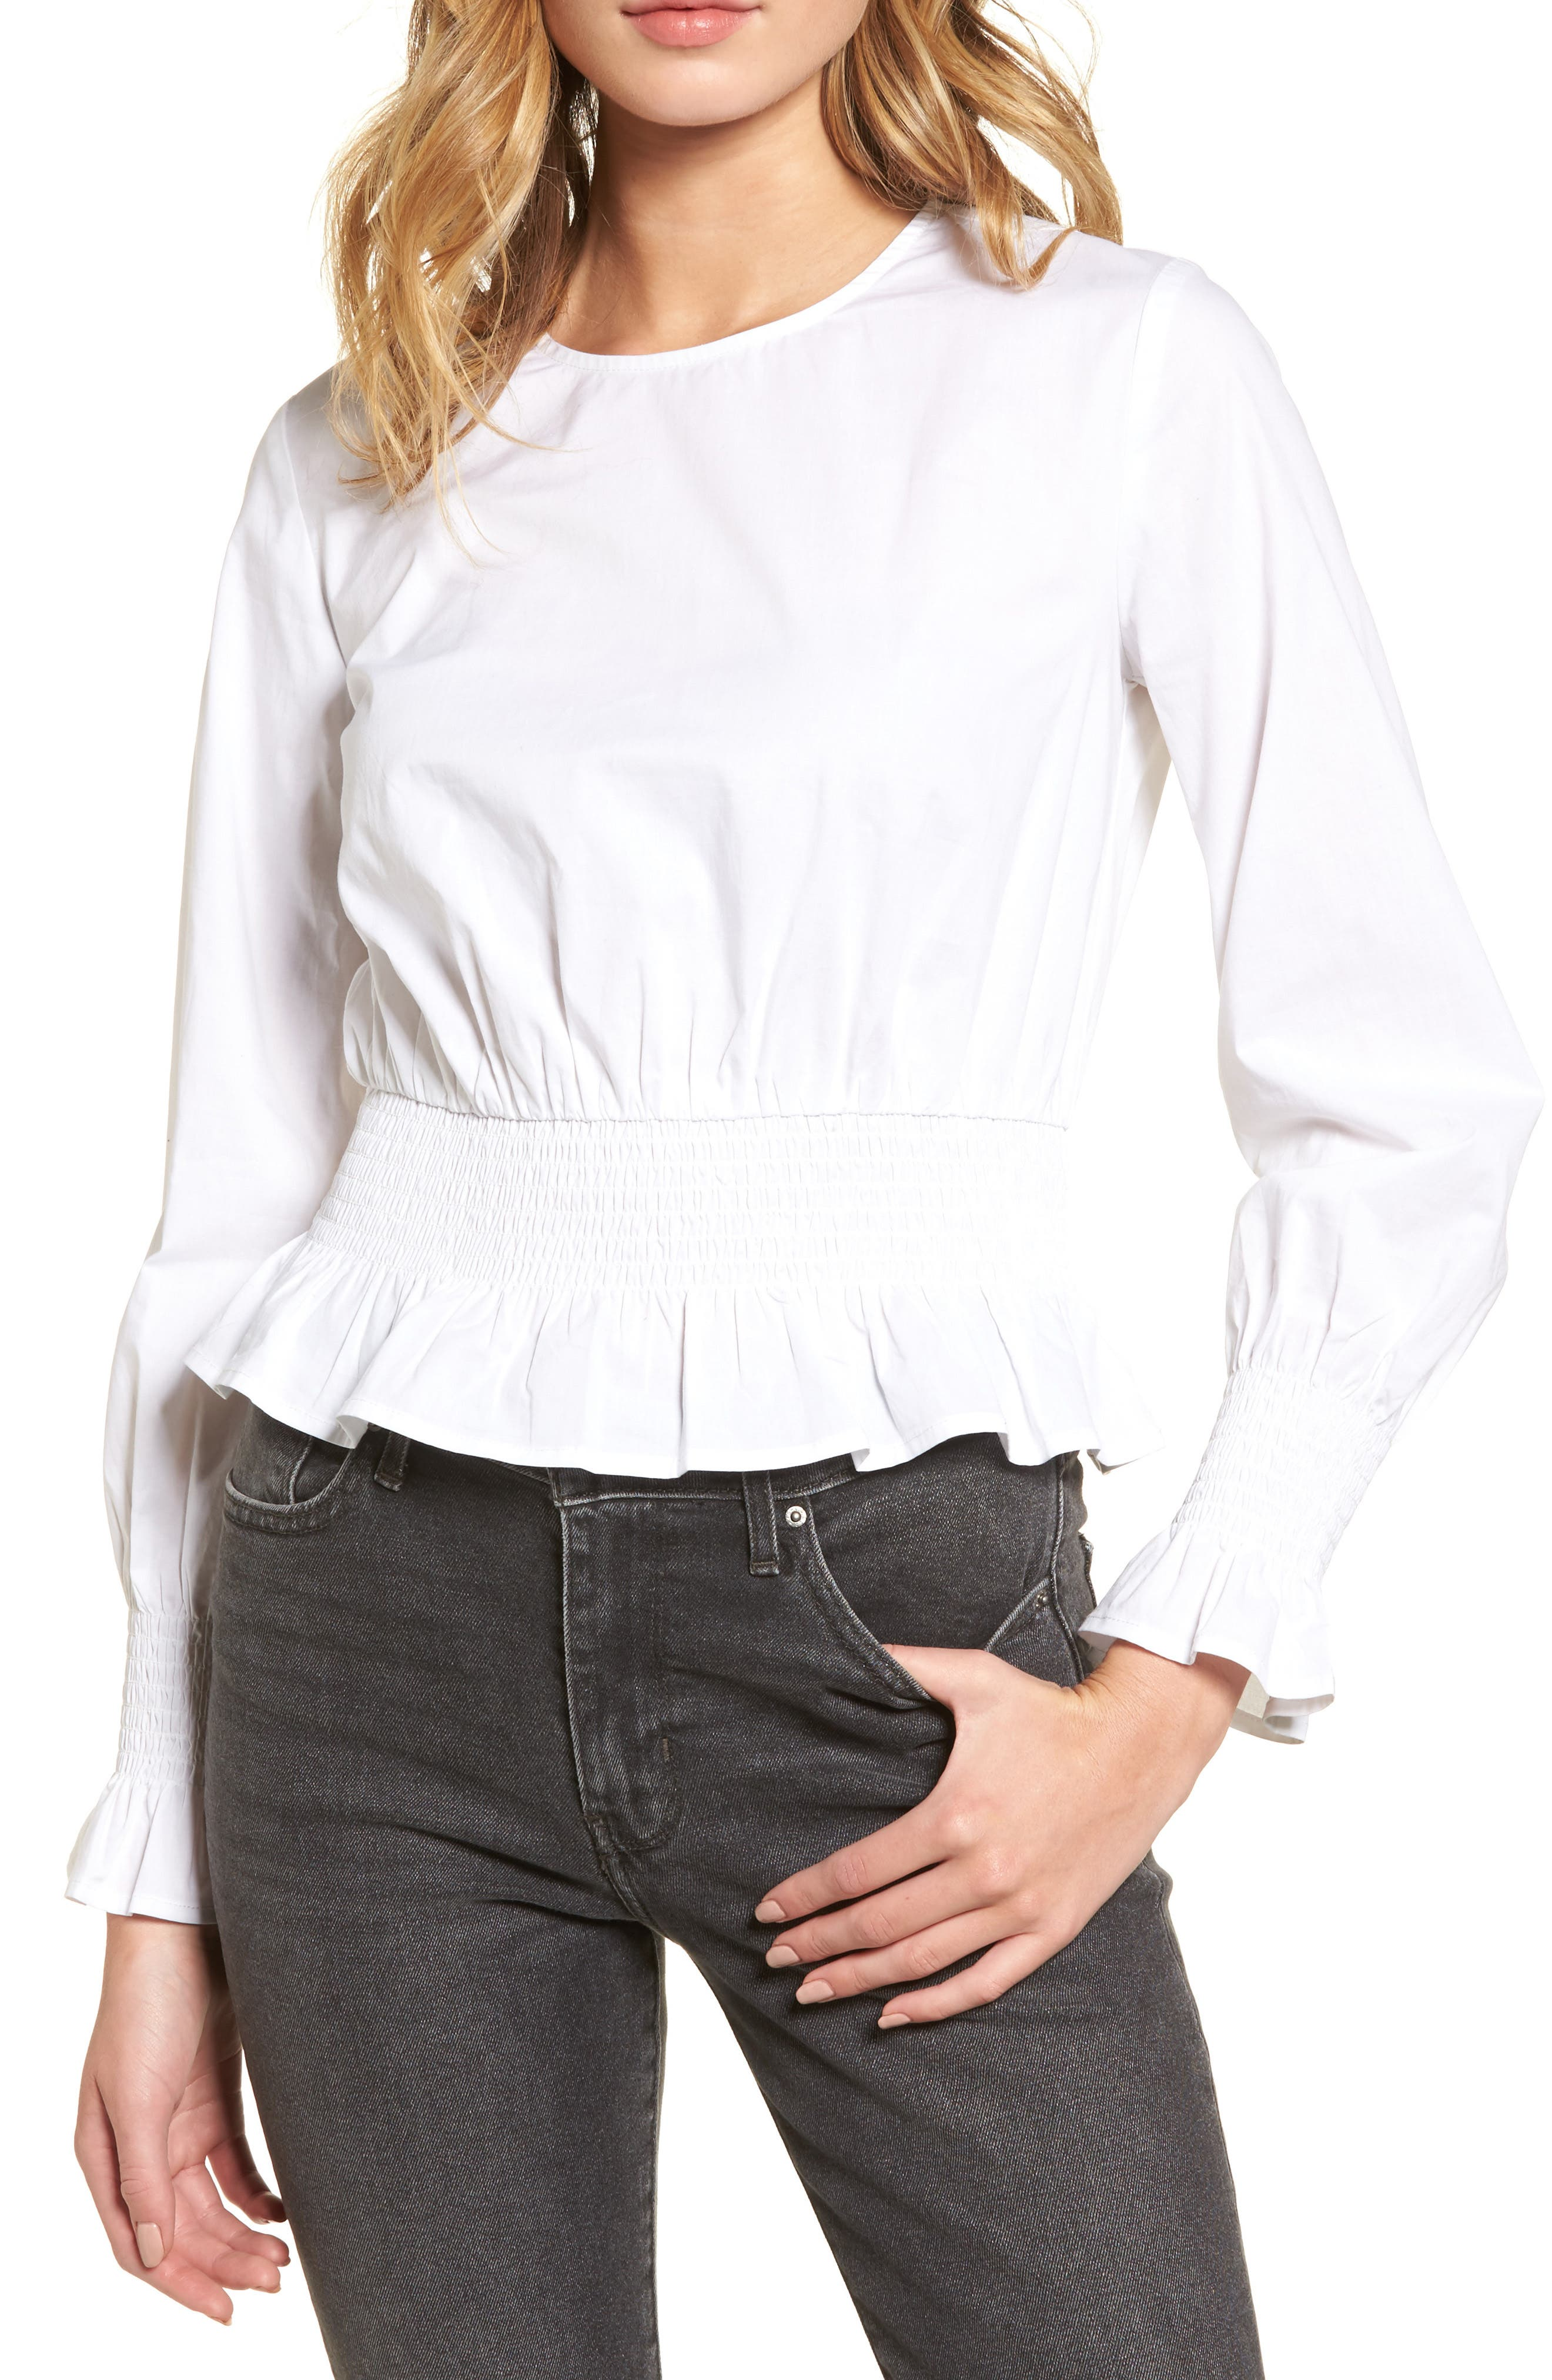 Alternate Image 1 Selected - Chloe & Katie Smocked Waist Peplum Top